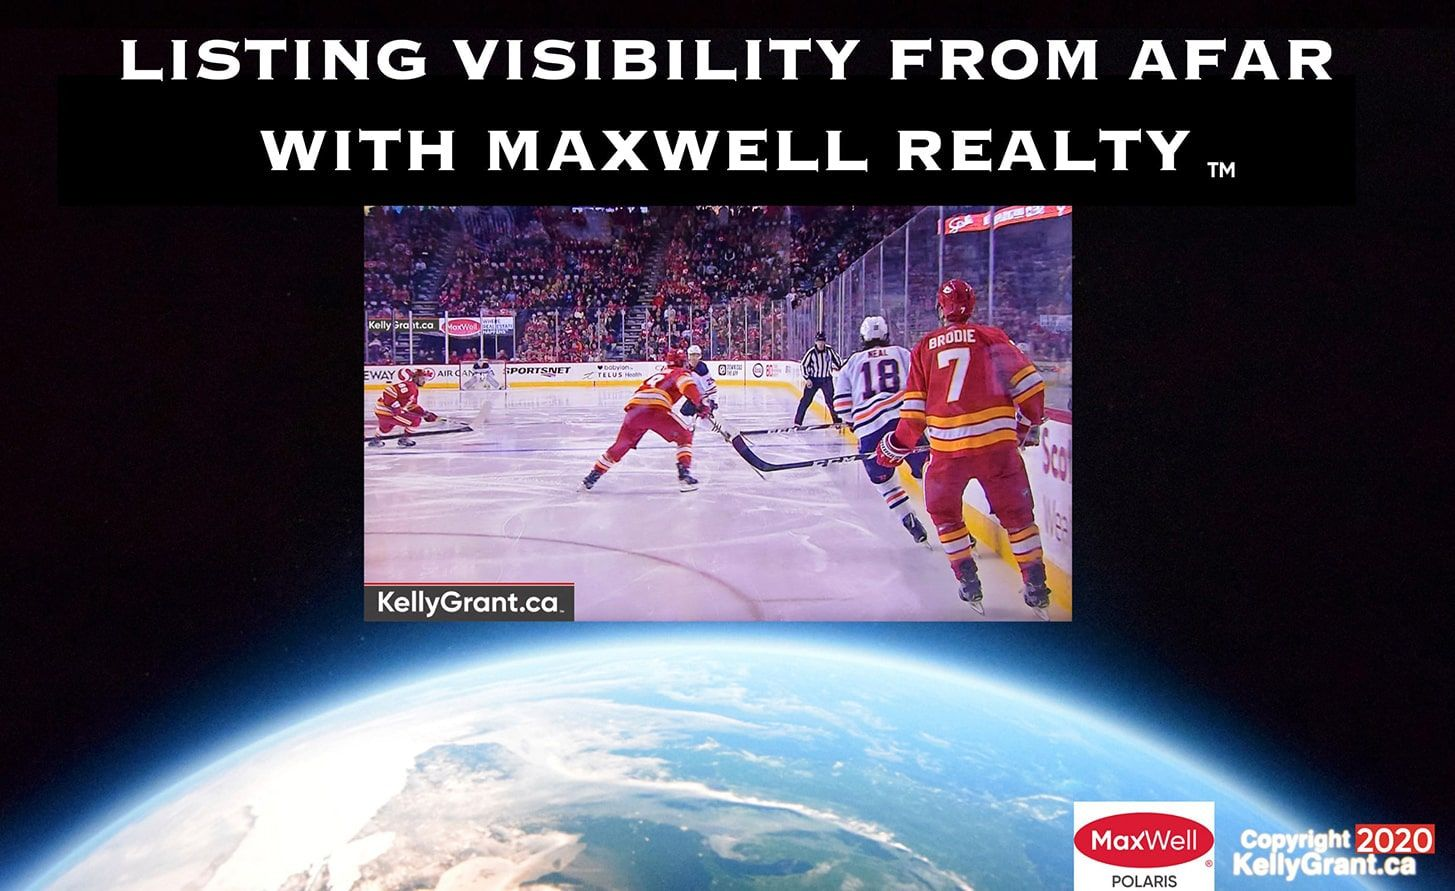 #31-KG MaxWell Listing Visibility from Afar.jpg